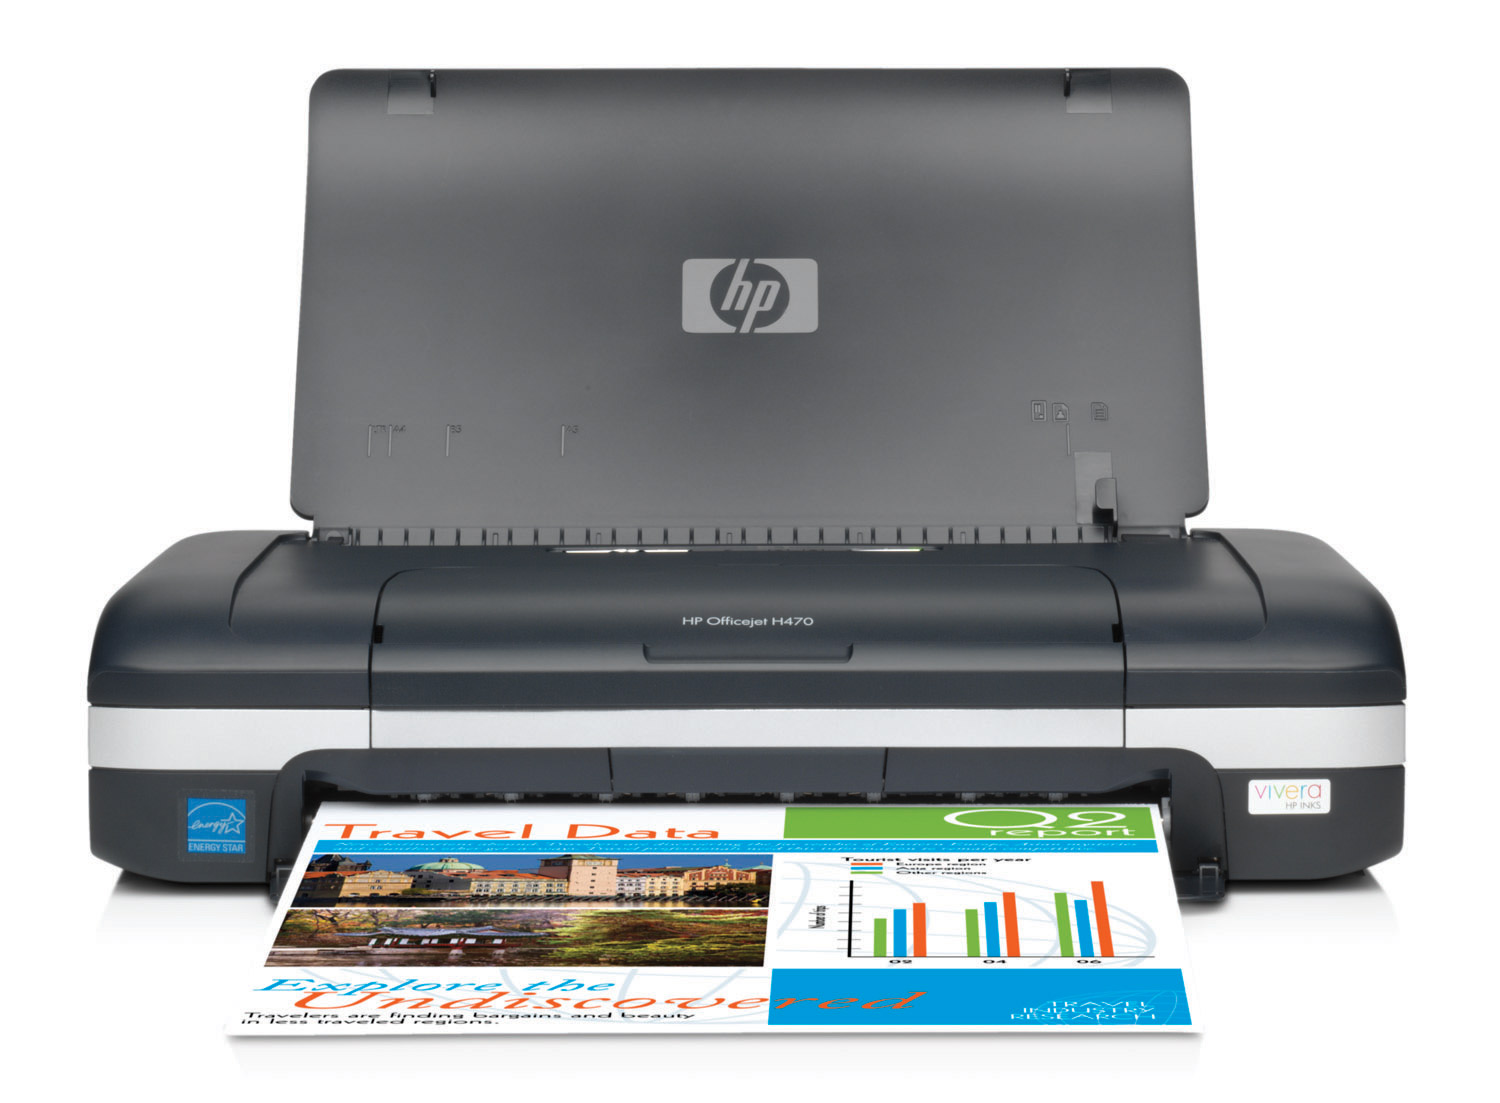 HP Officejet H470wbt Mobile Printer